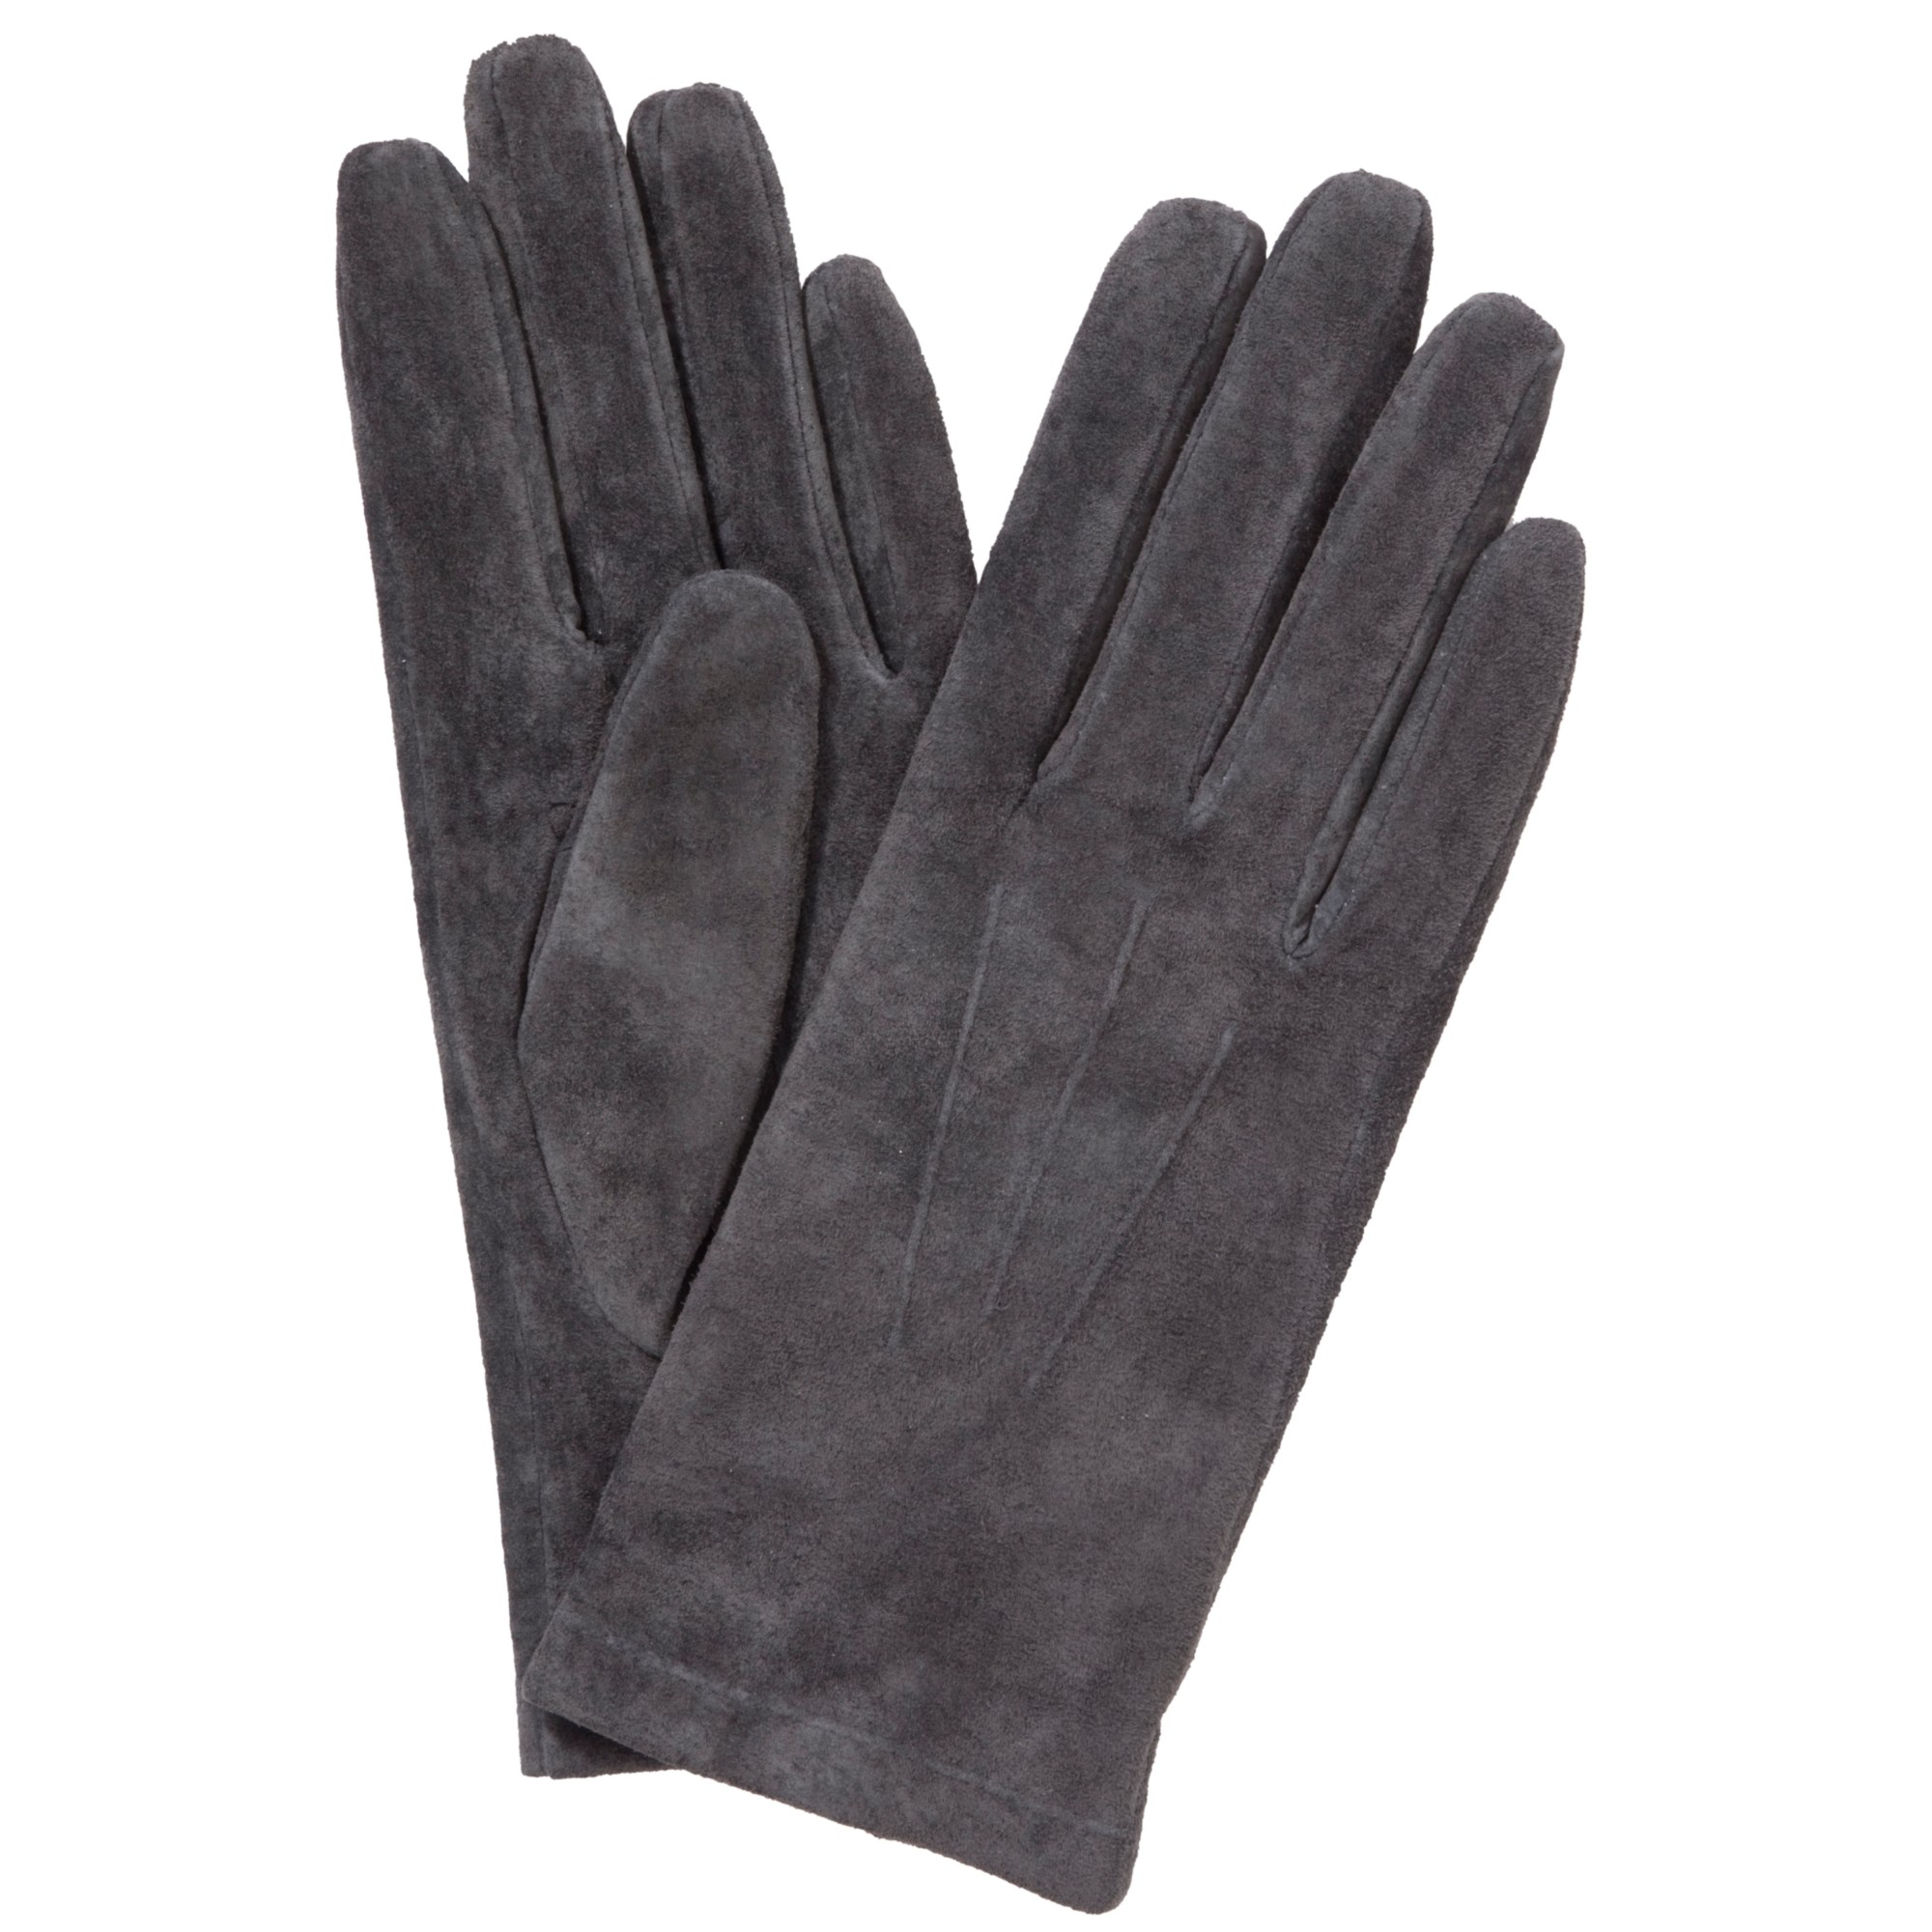 John lewis ladies black leather gloves - Be Inspired